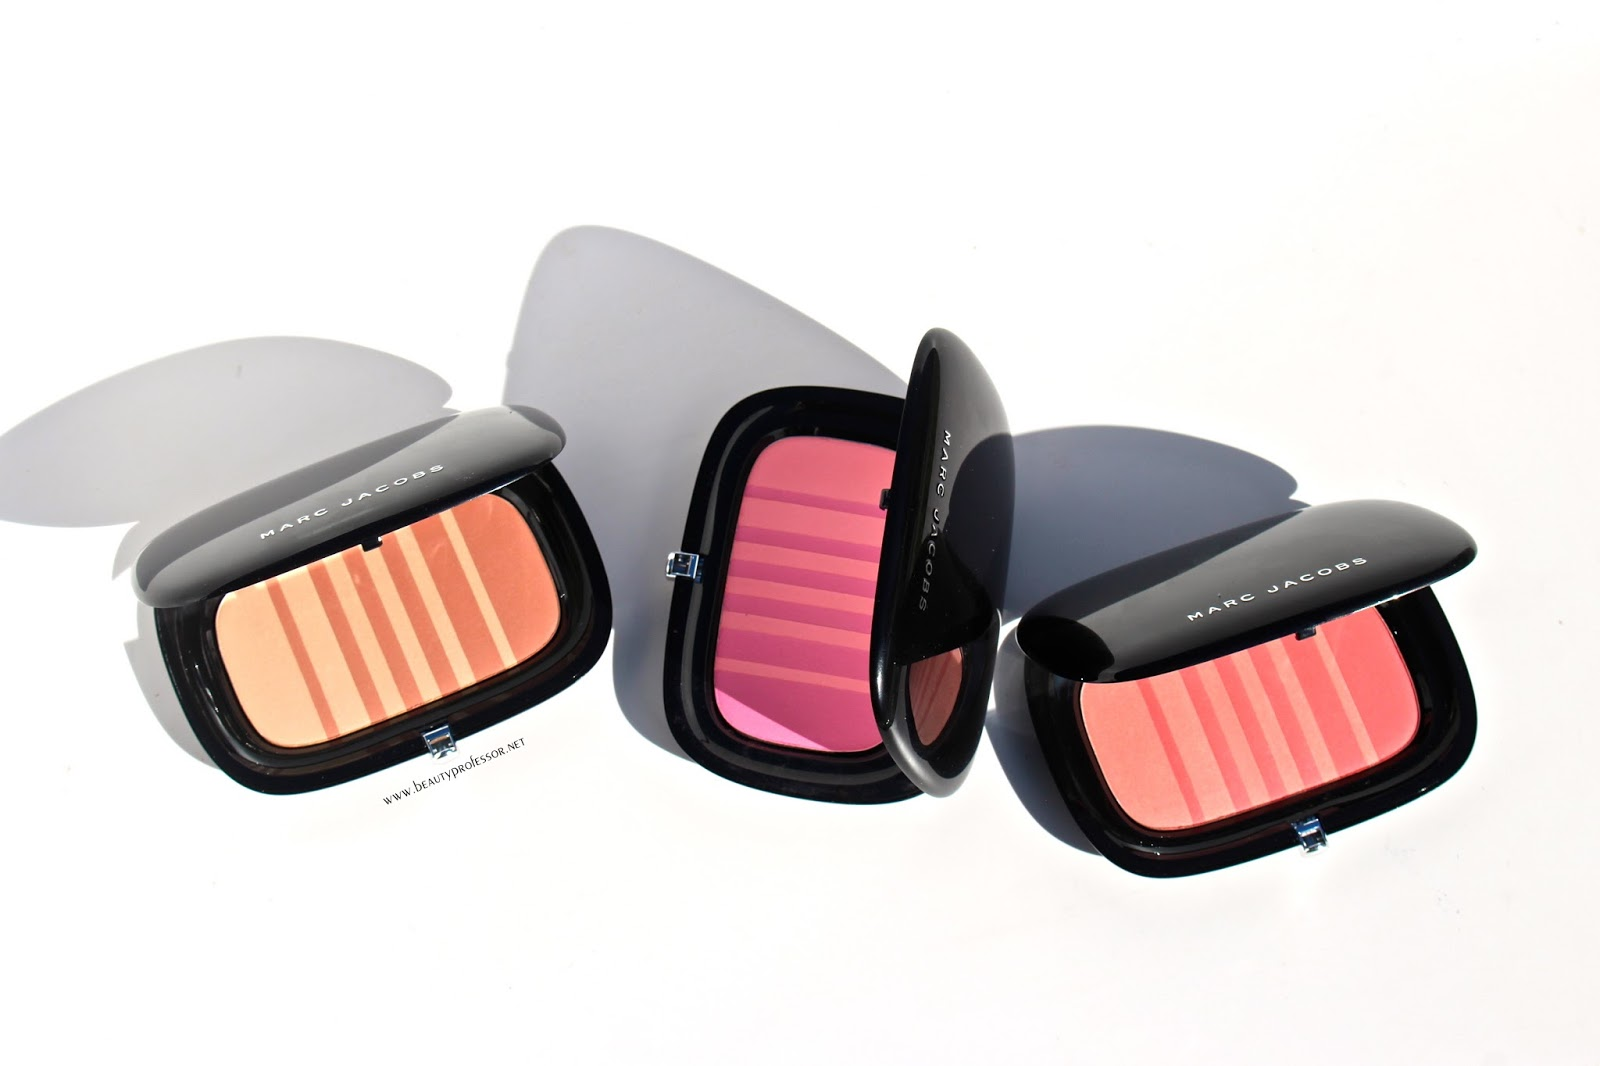 dc44cf01ead695 Gossamer Dreams  Introducing the Marc Jacobs Beauty Air Blush Soft Glow Duo